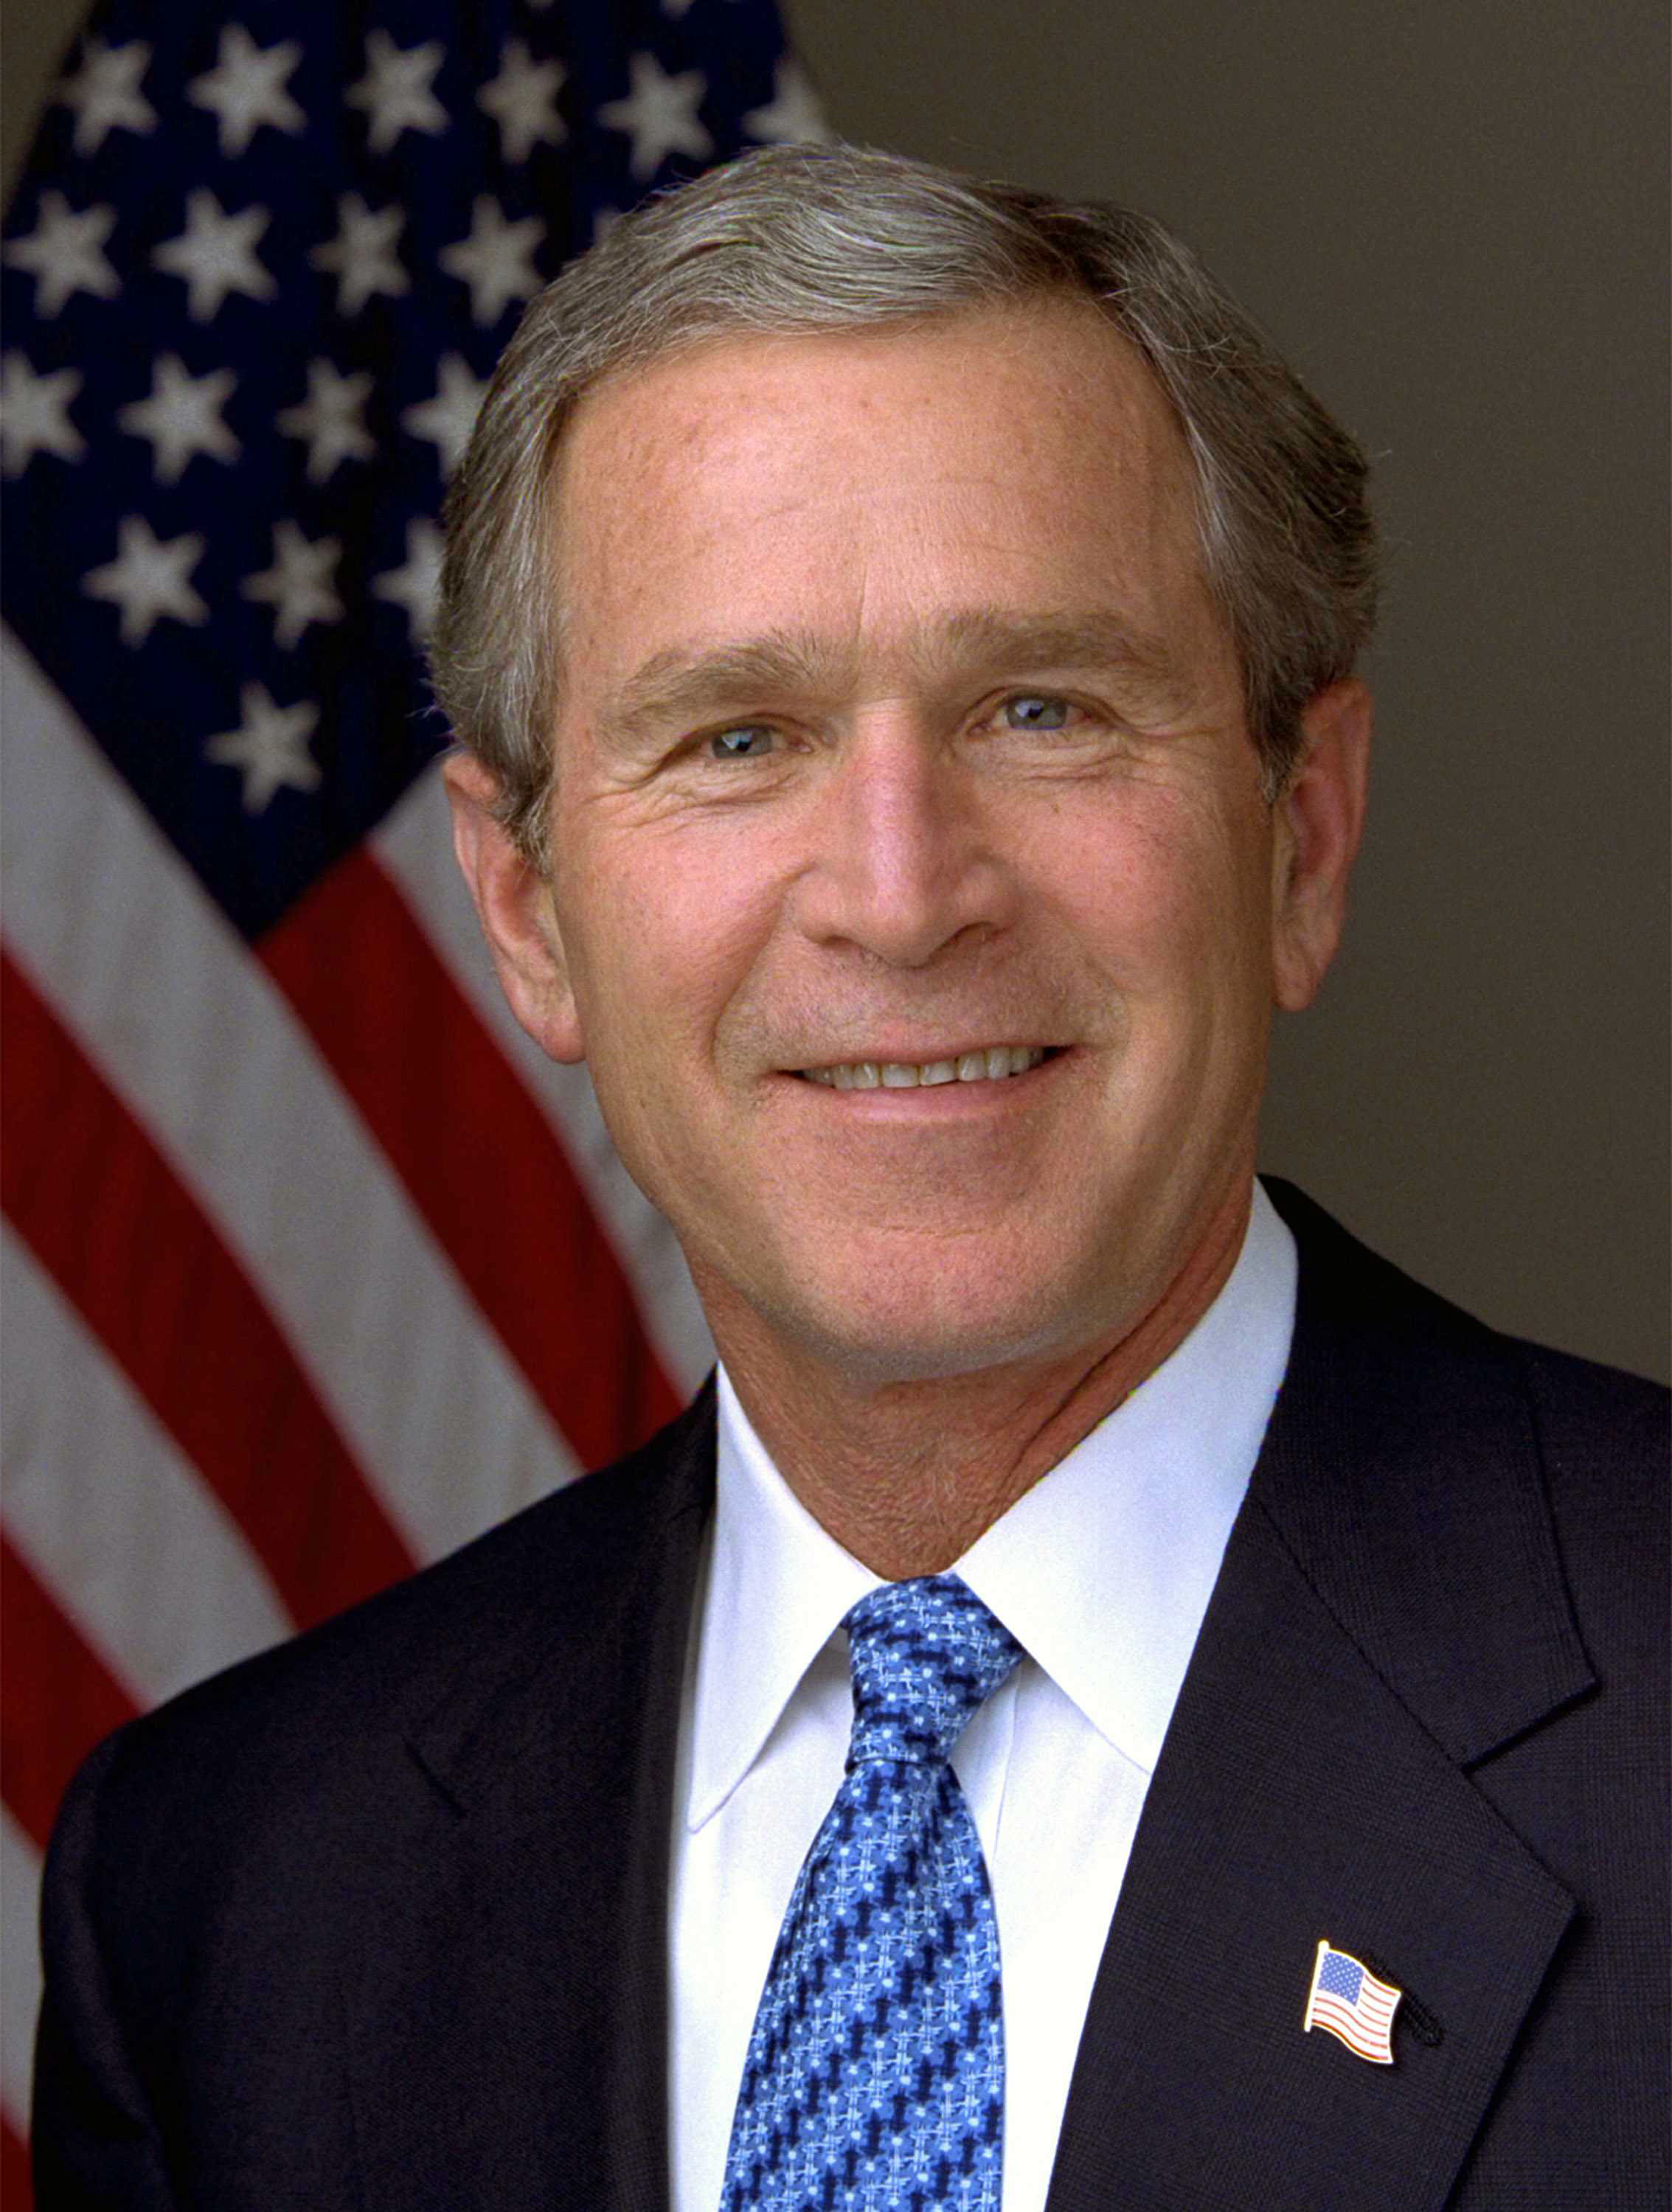 George W Bush Wikipedia